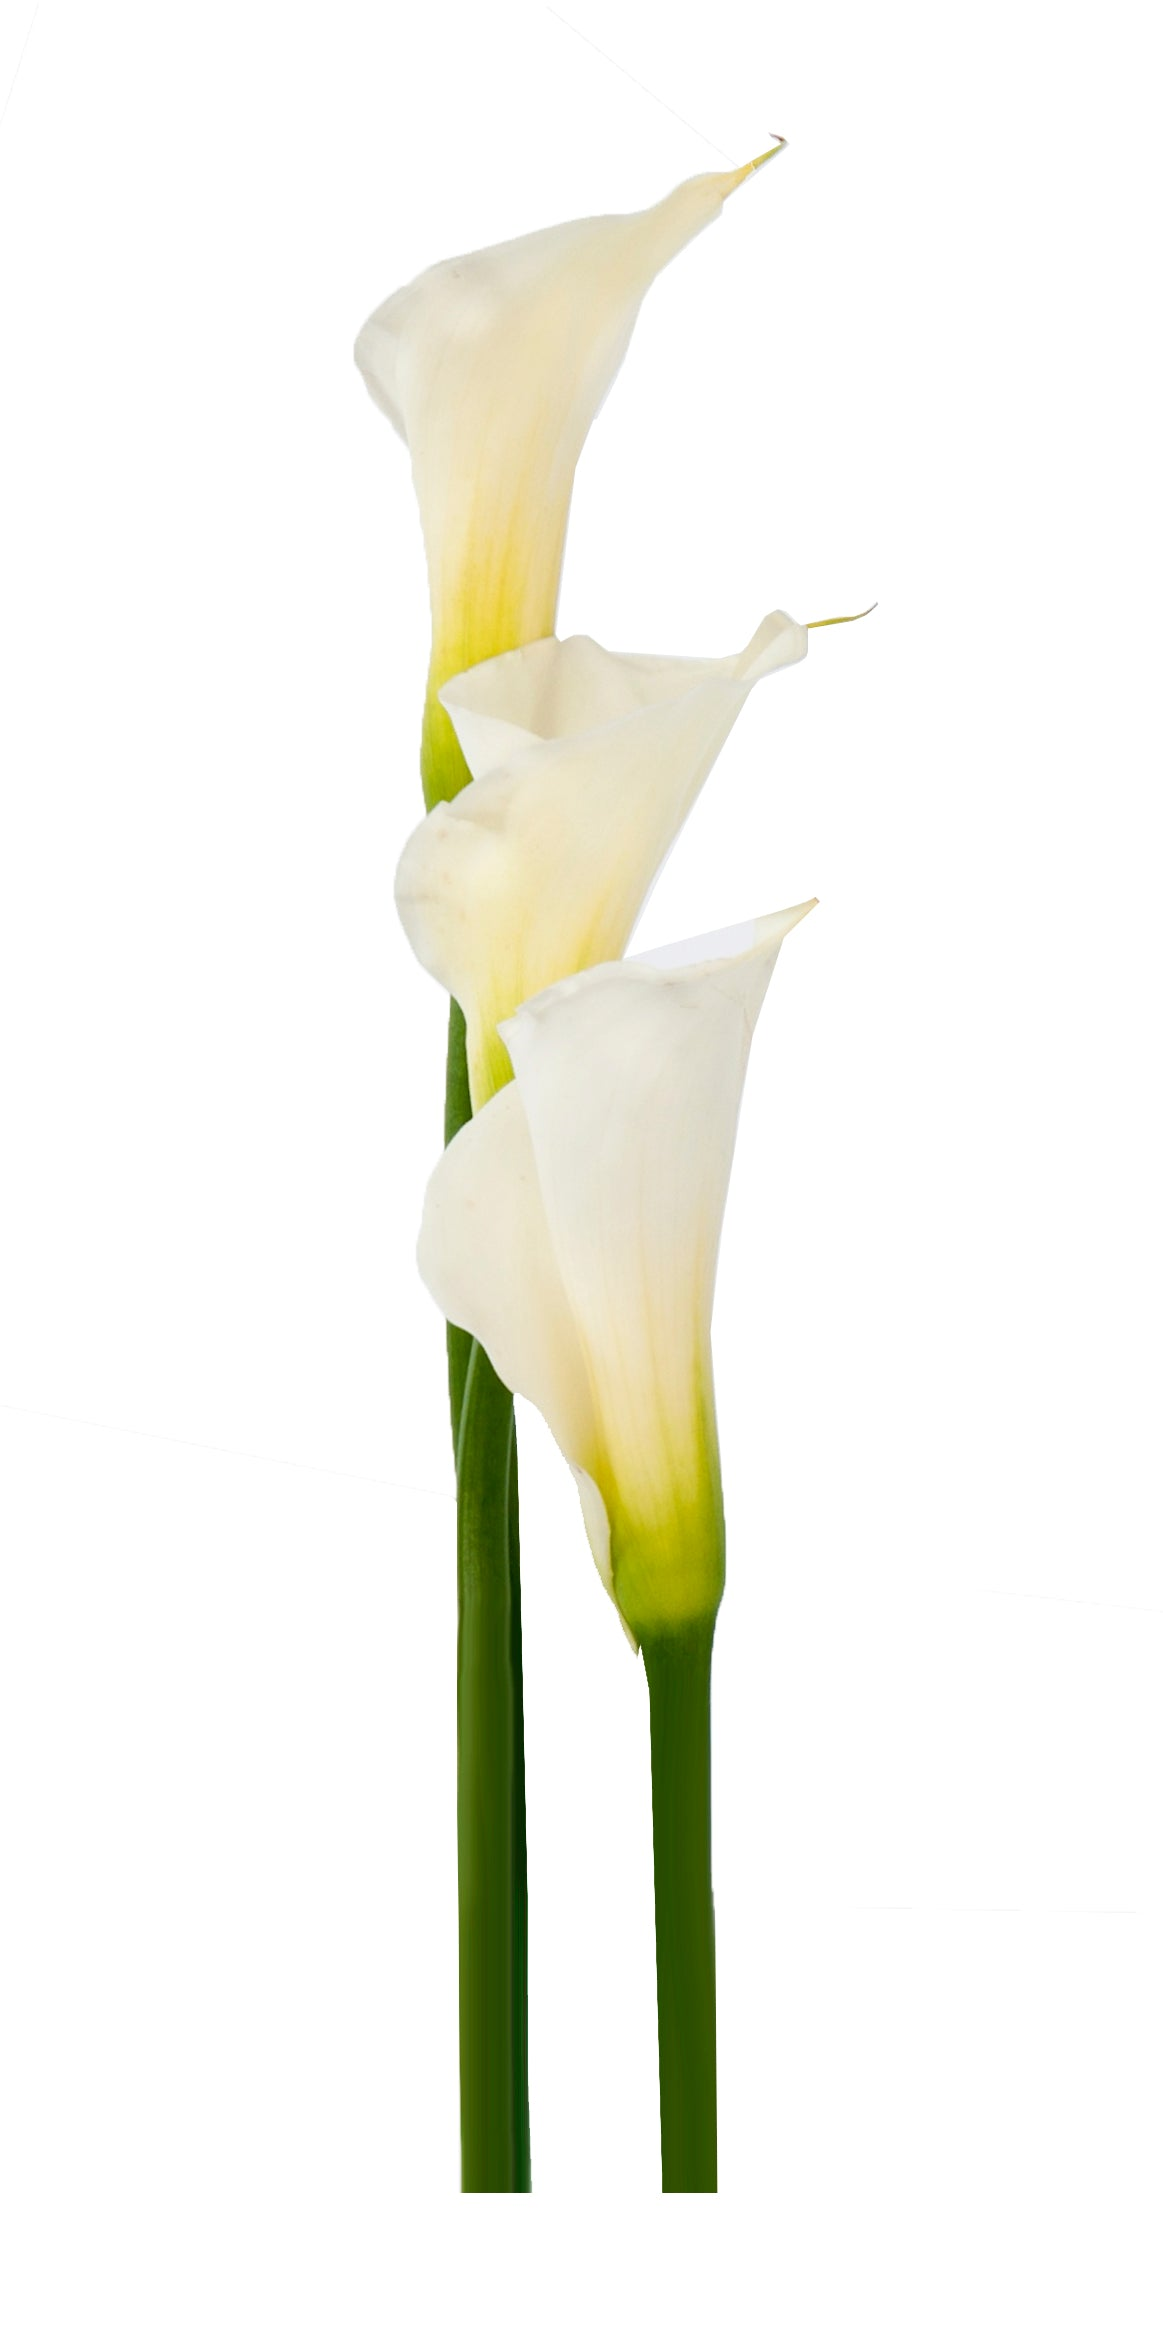 cwhite calla lilies, Fresh cut flower, flowers for events, dance recitals, events, wedding flowers, wedding arrangements, flower, beautiful flowers, bulk flowers, cut flowers, wedding planners, wholesale prices,  flowers, freshly cut flowers, color flowers, decoration